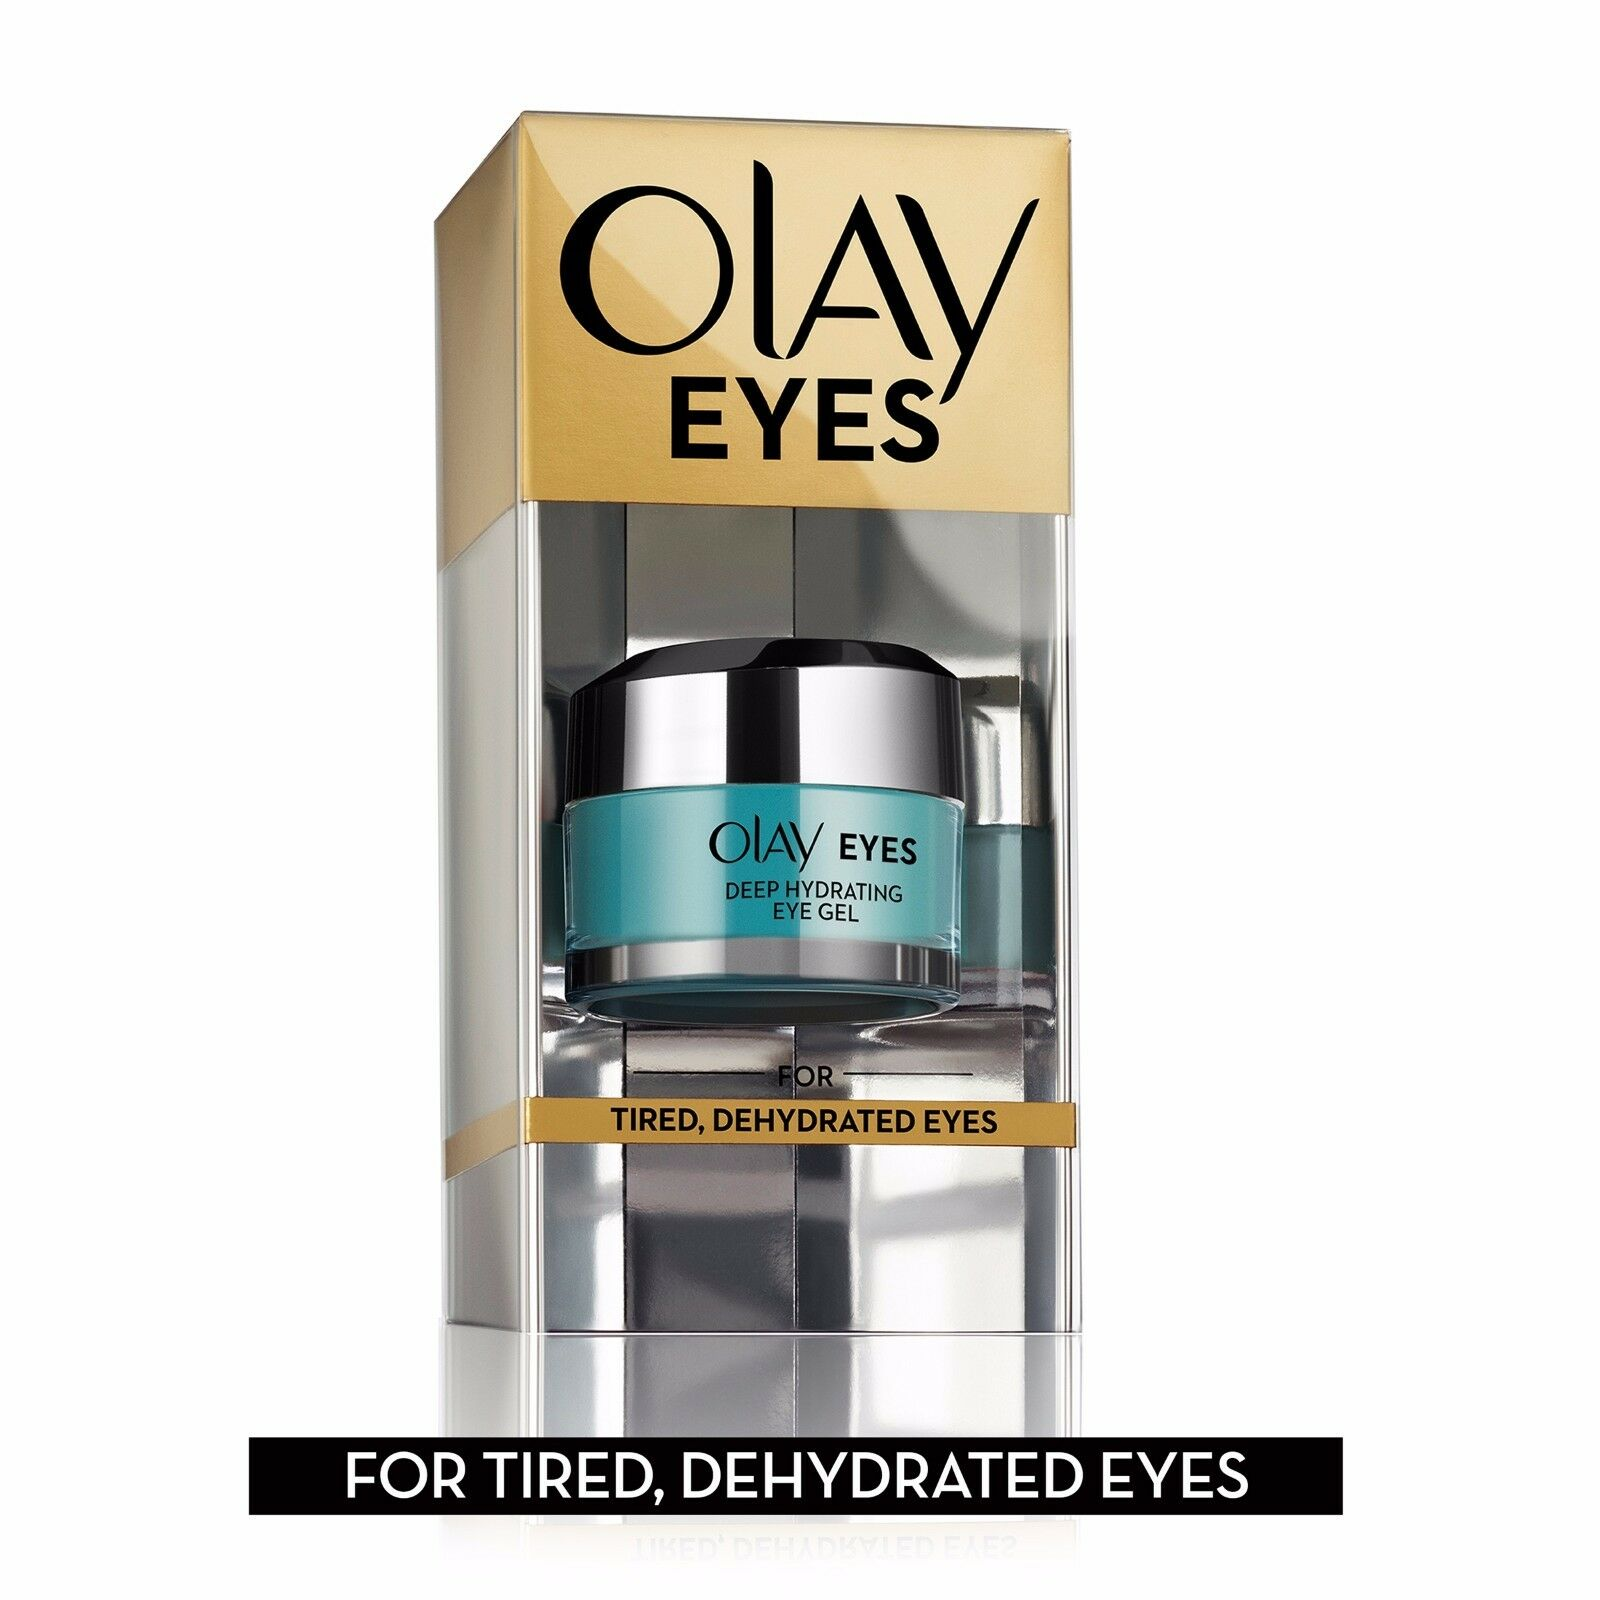 Olay Eyes Deep Hydrating Eye Gel with Hyaluronic Acid, 0.5 f